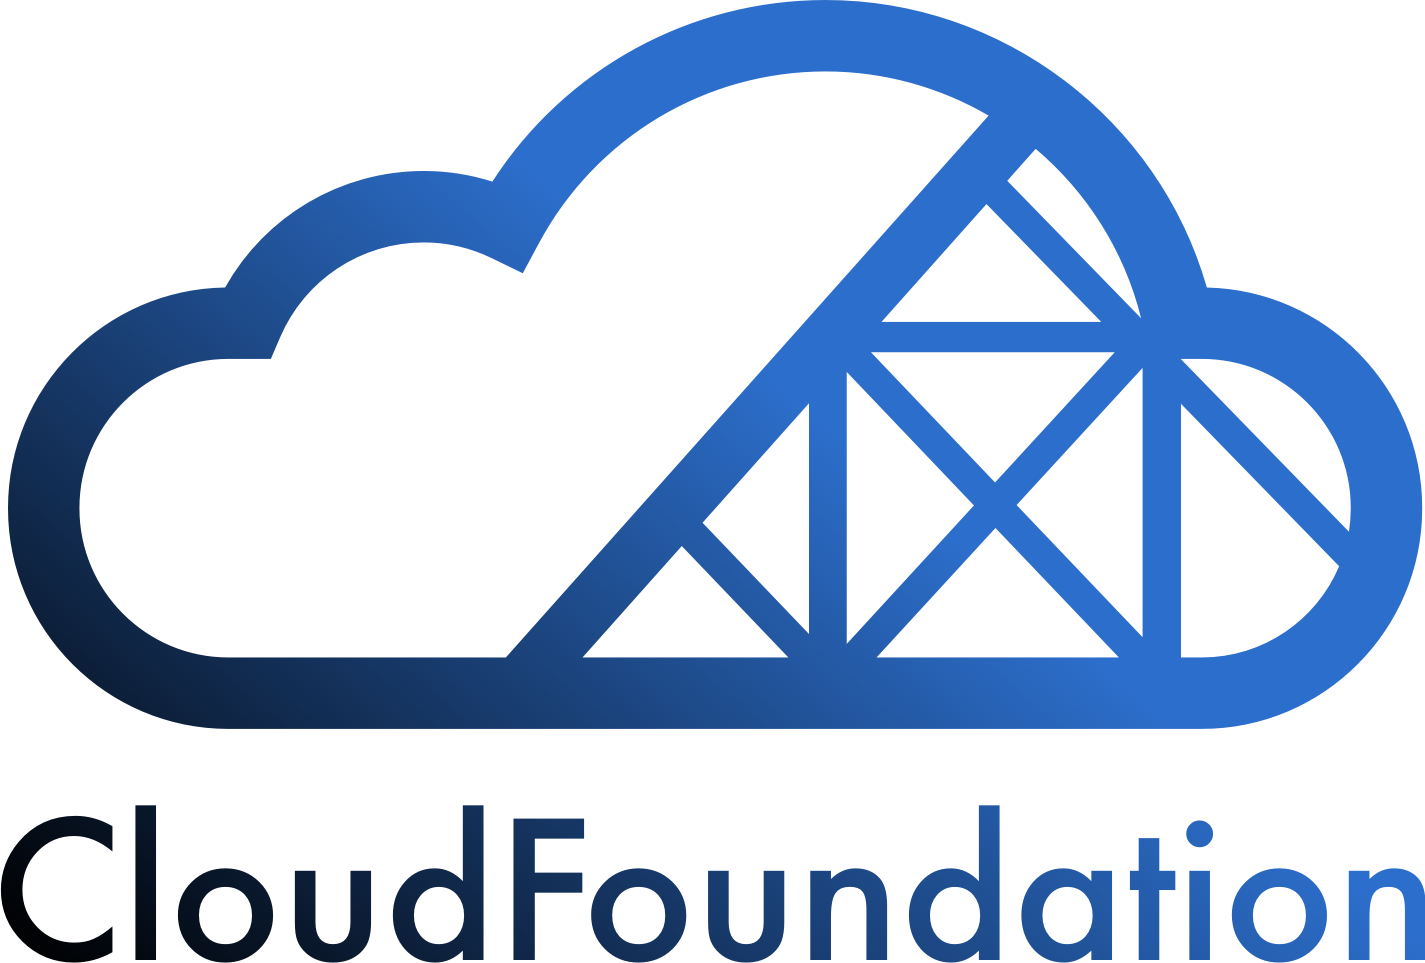 Using CloudFoundation to Build, Manage, and Deploy